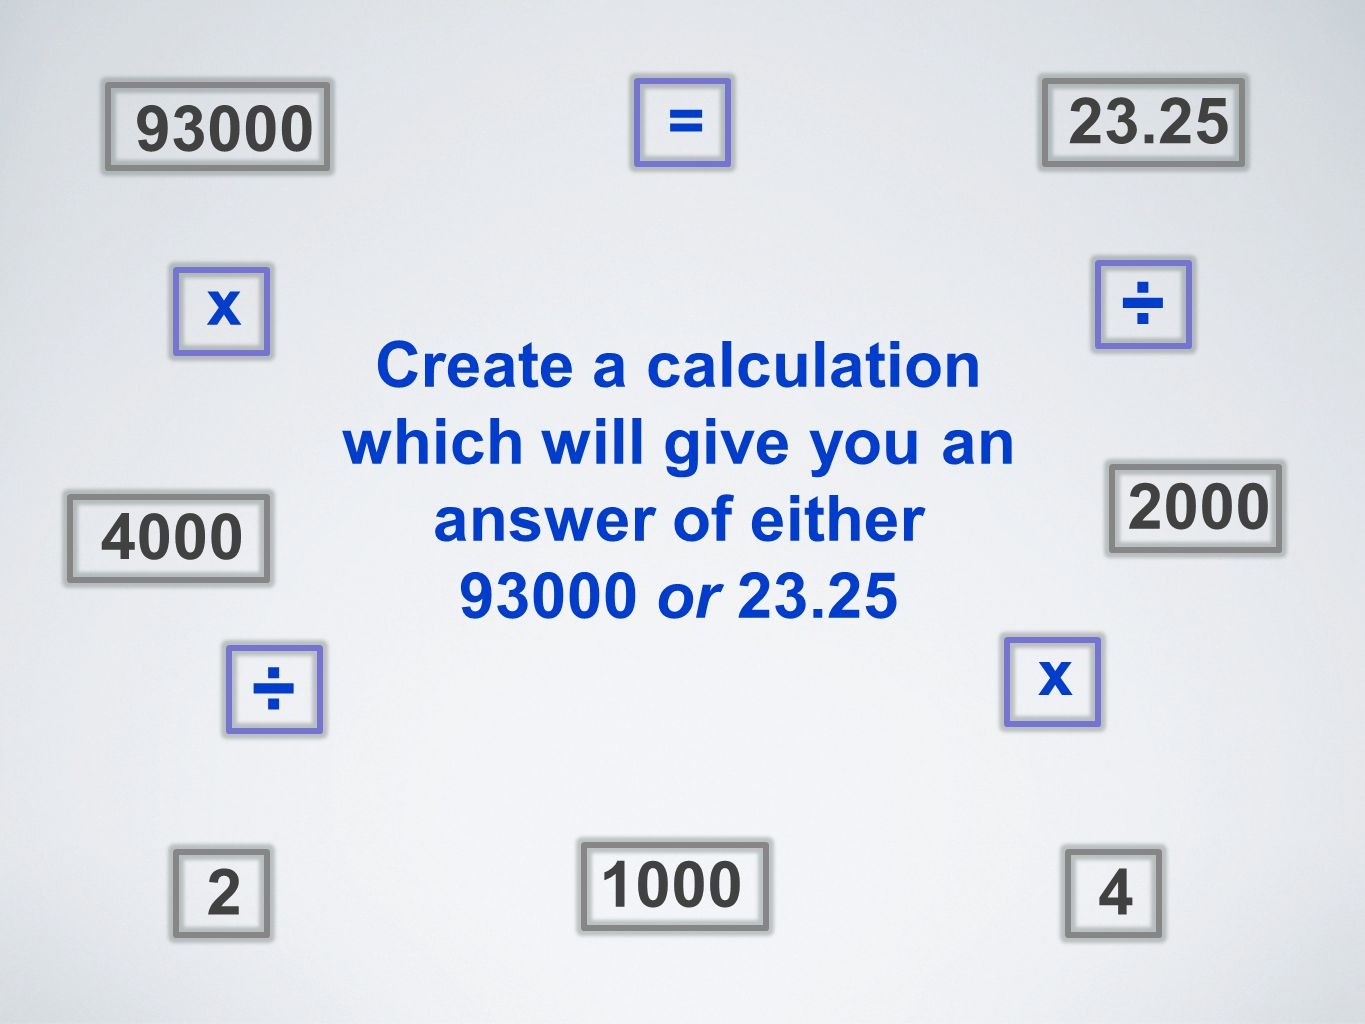 4000 93000 1000 23.25 24 2000 = ÷ x x ÷ Create a calculation which will give you an answer of either 93000 or 23.25